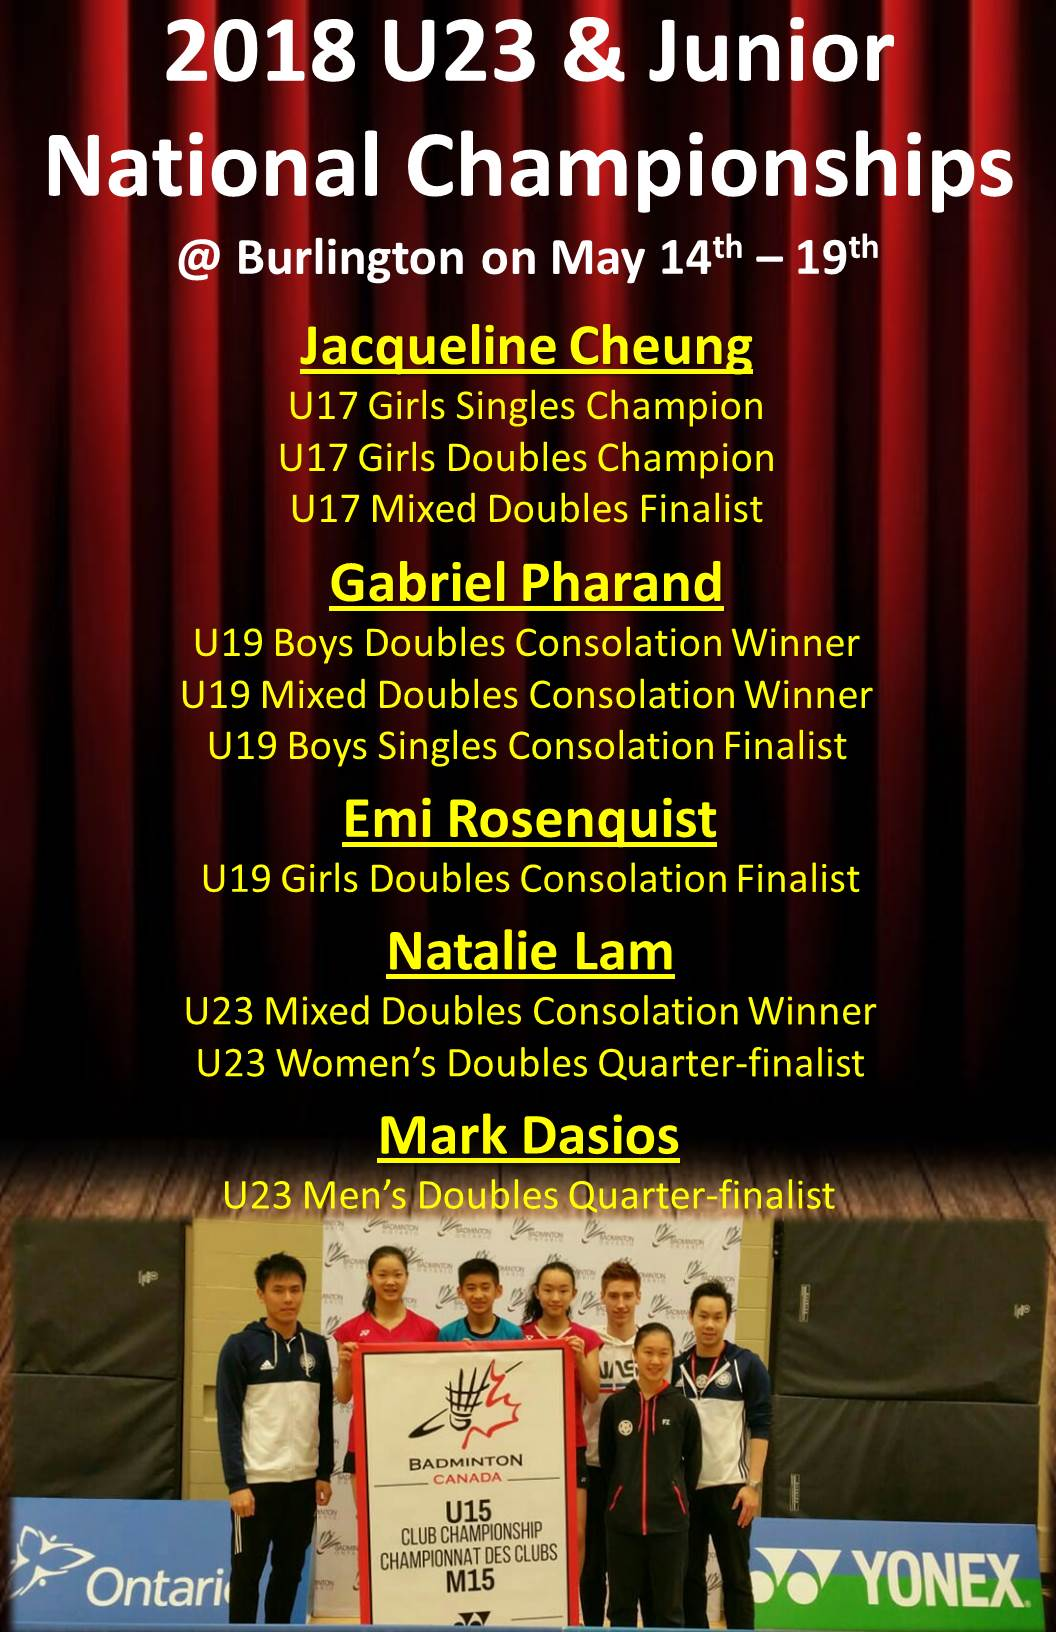 2018 U23 & Junior National Championships (2nd poster)